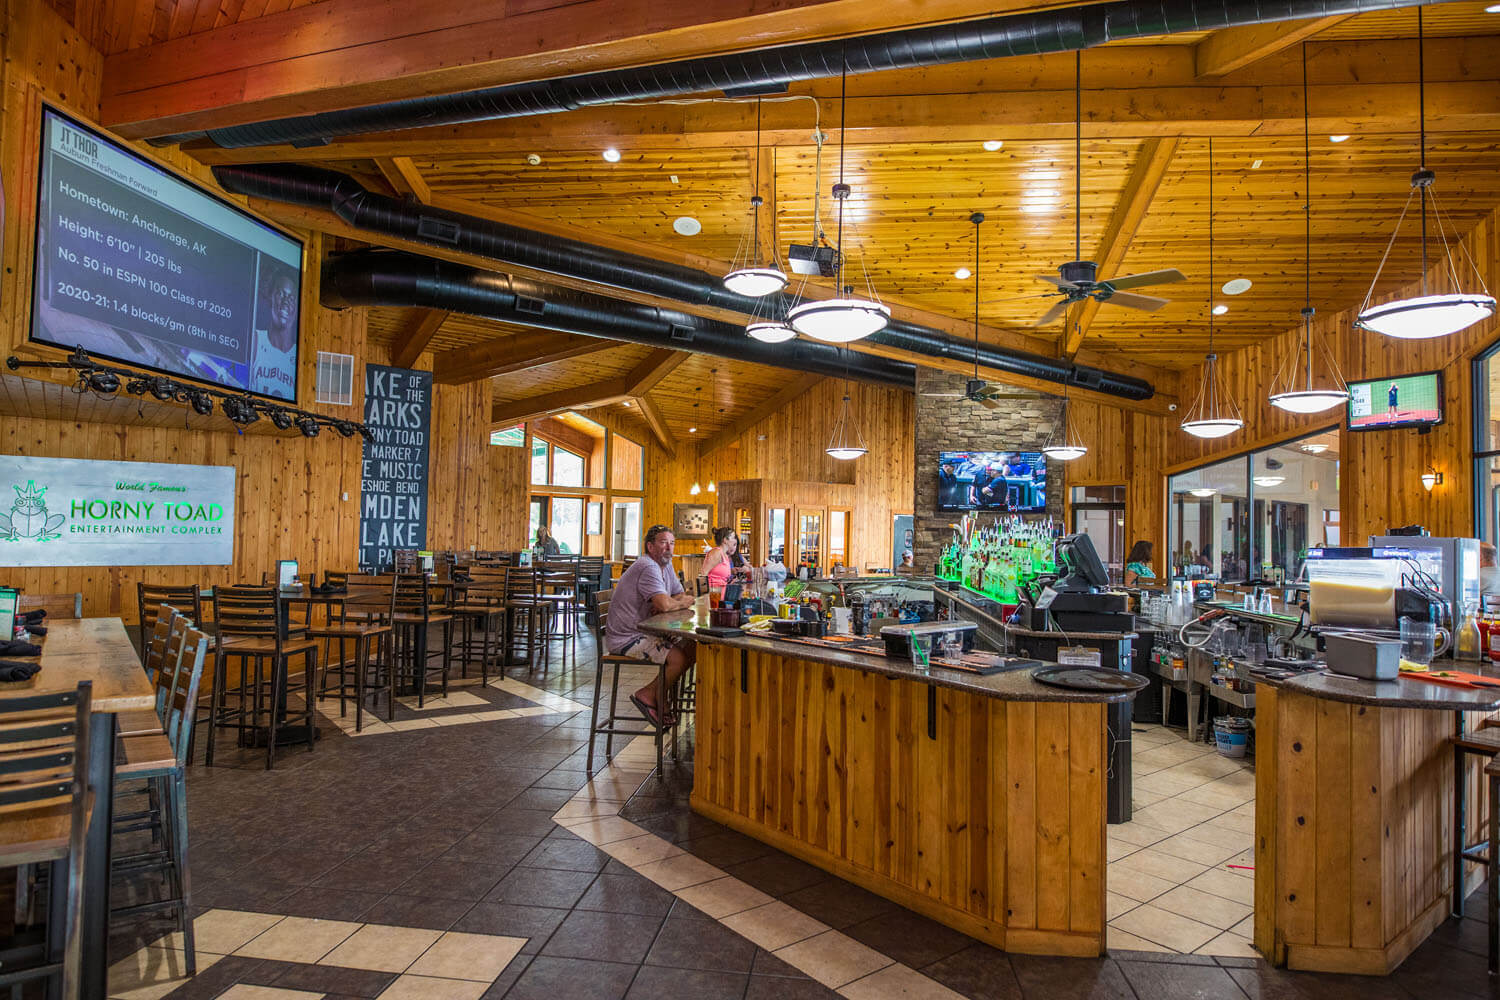 Indoor dining and bar seating at H. Toad's Bar & Grill Horny Toad Entertainment Complex at Camden on the Lake Resort